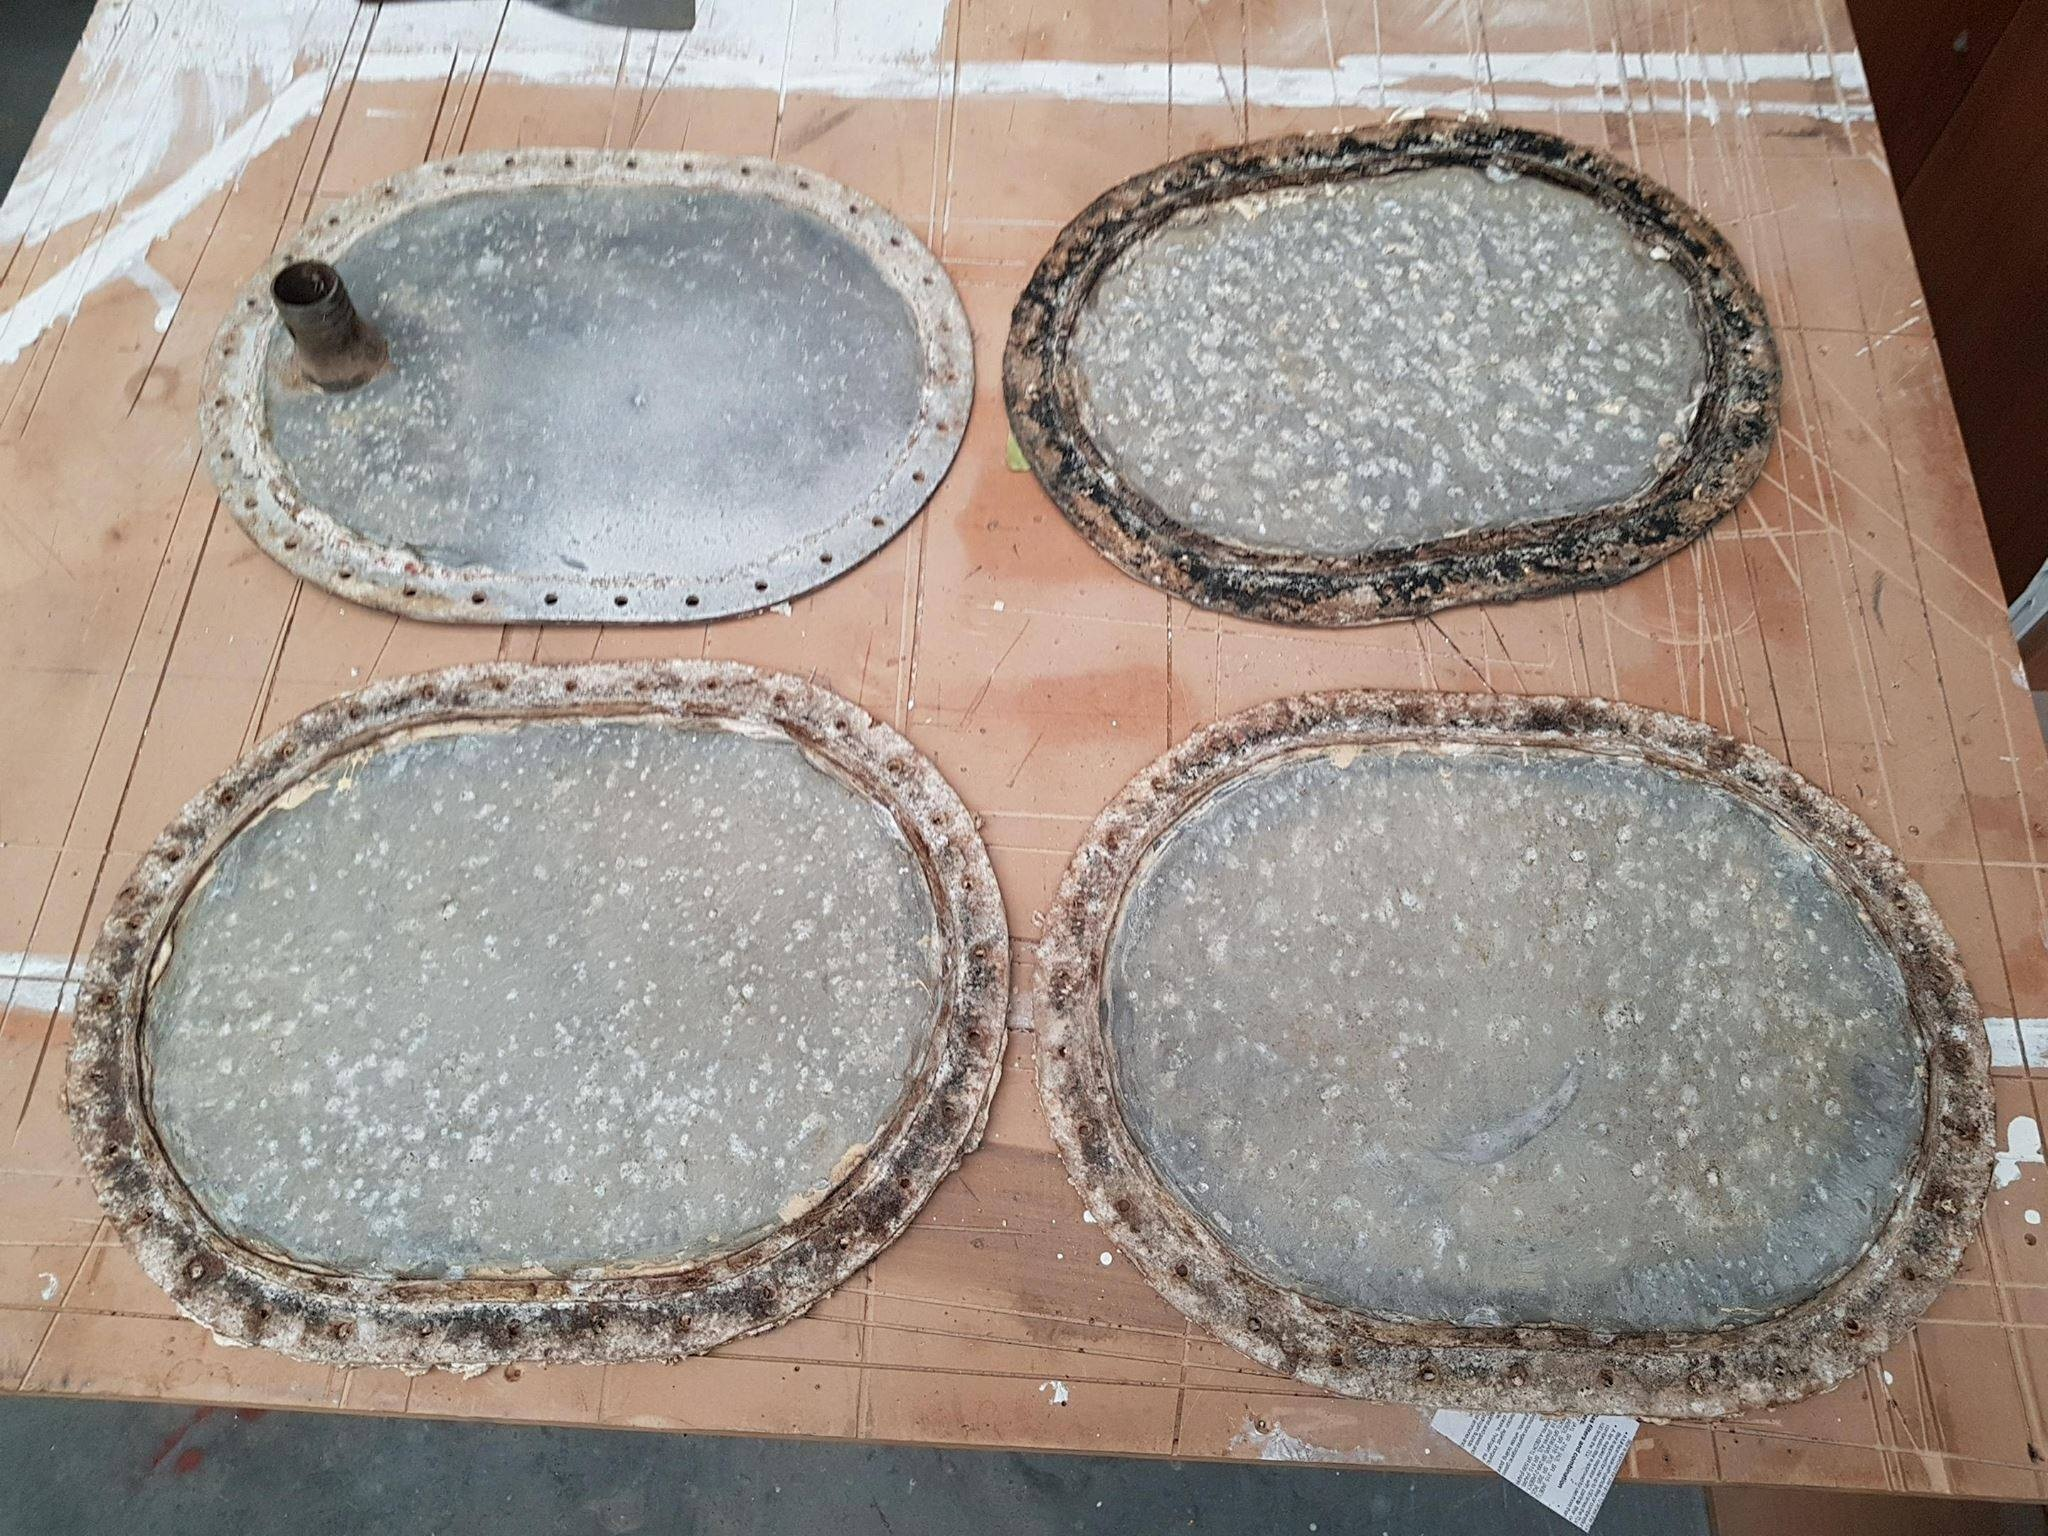 TANK LIDS REFINISHING BEFORE